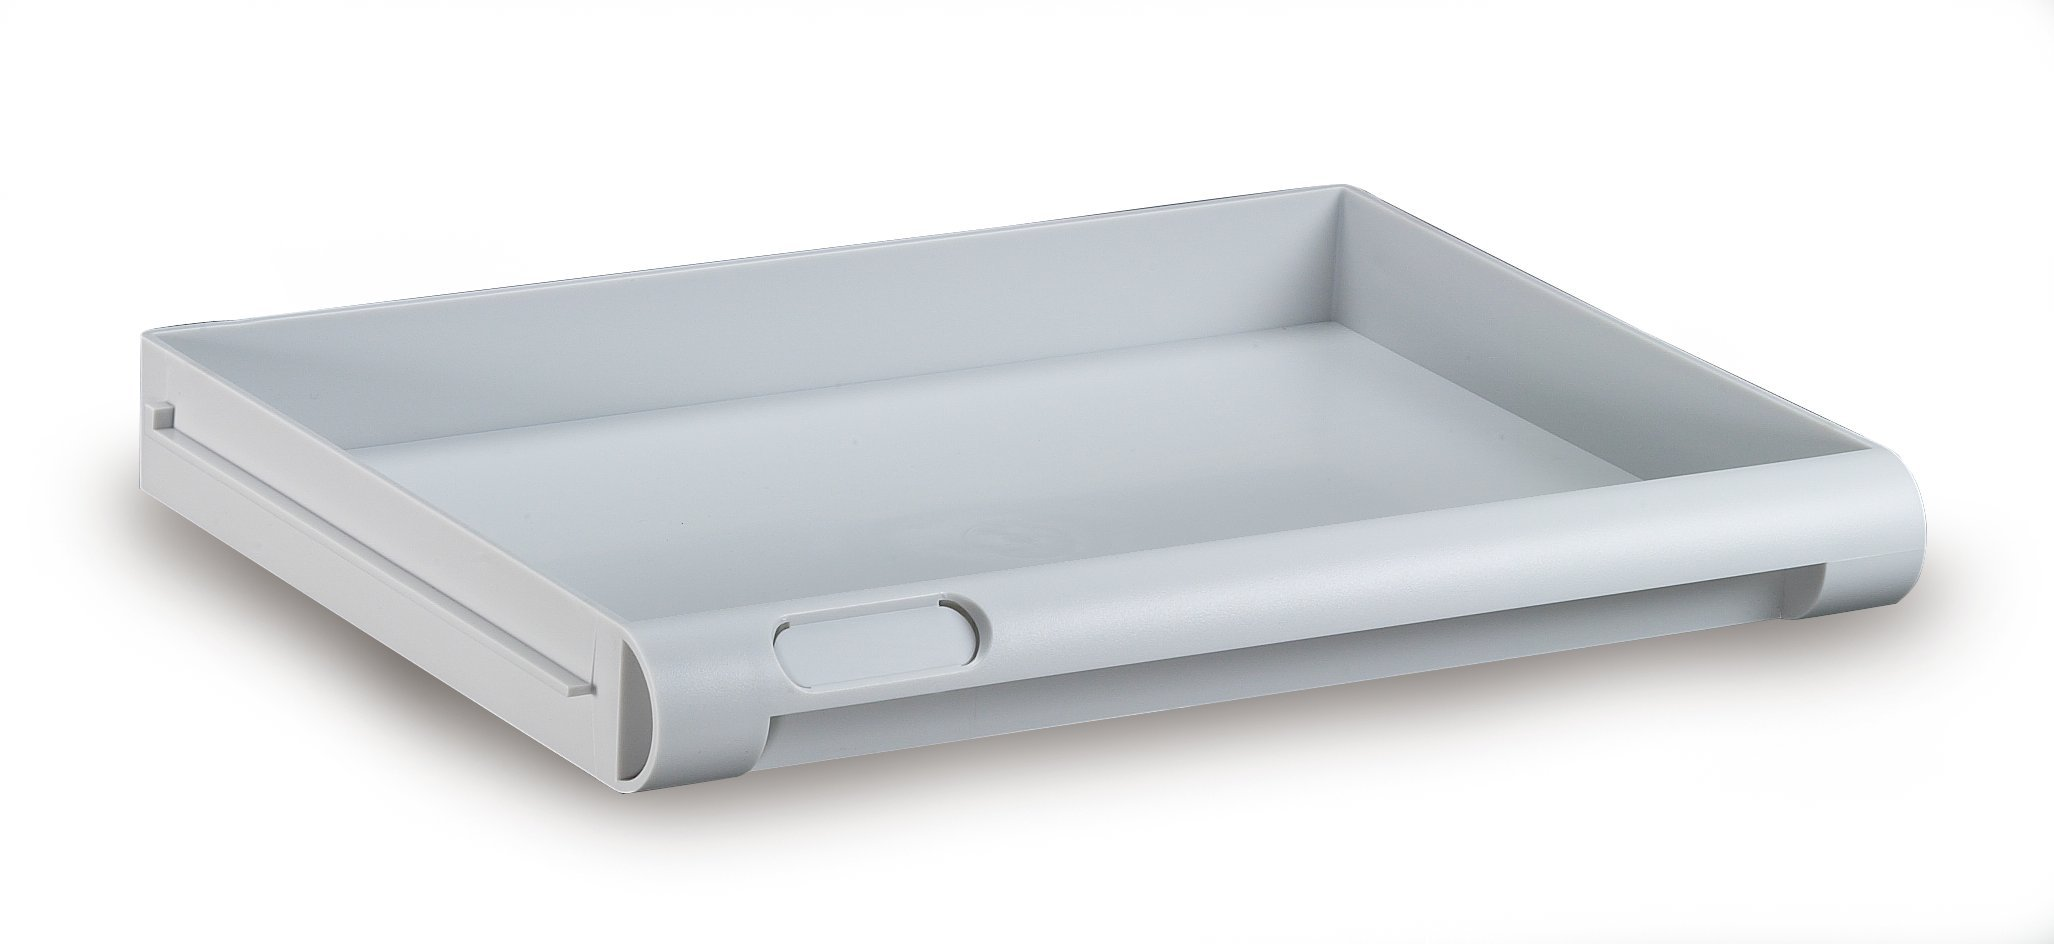 SentrySafe 914 Tray Insert Accessory for 2.0 Cubic Feet Safes